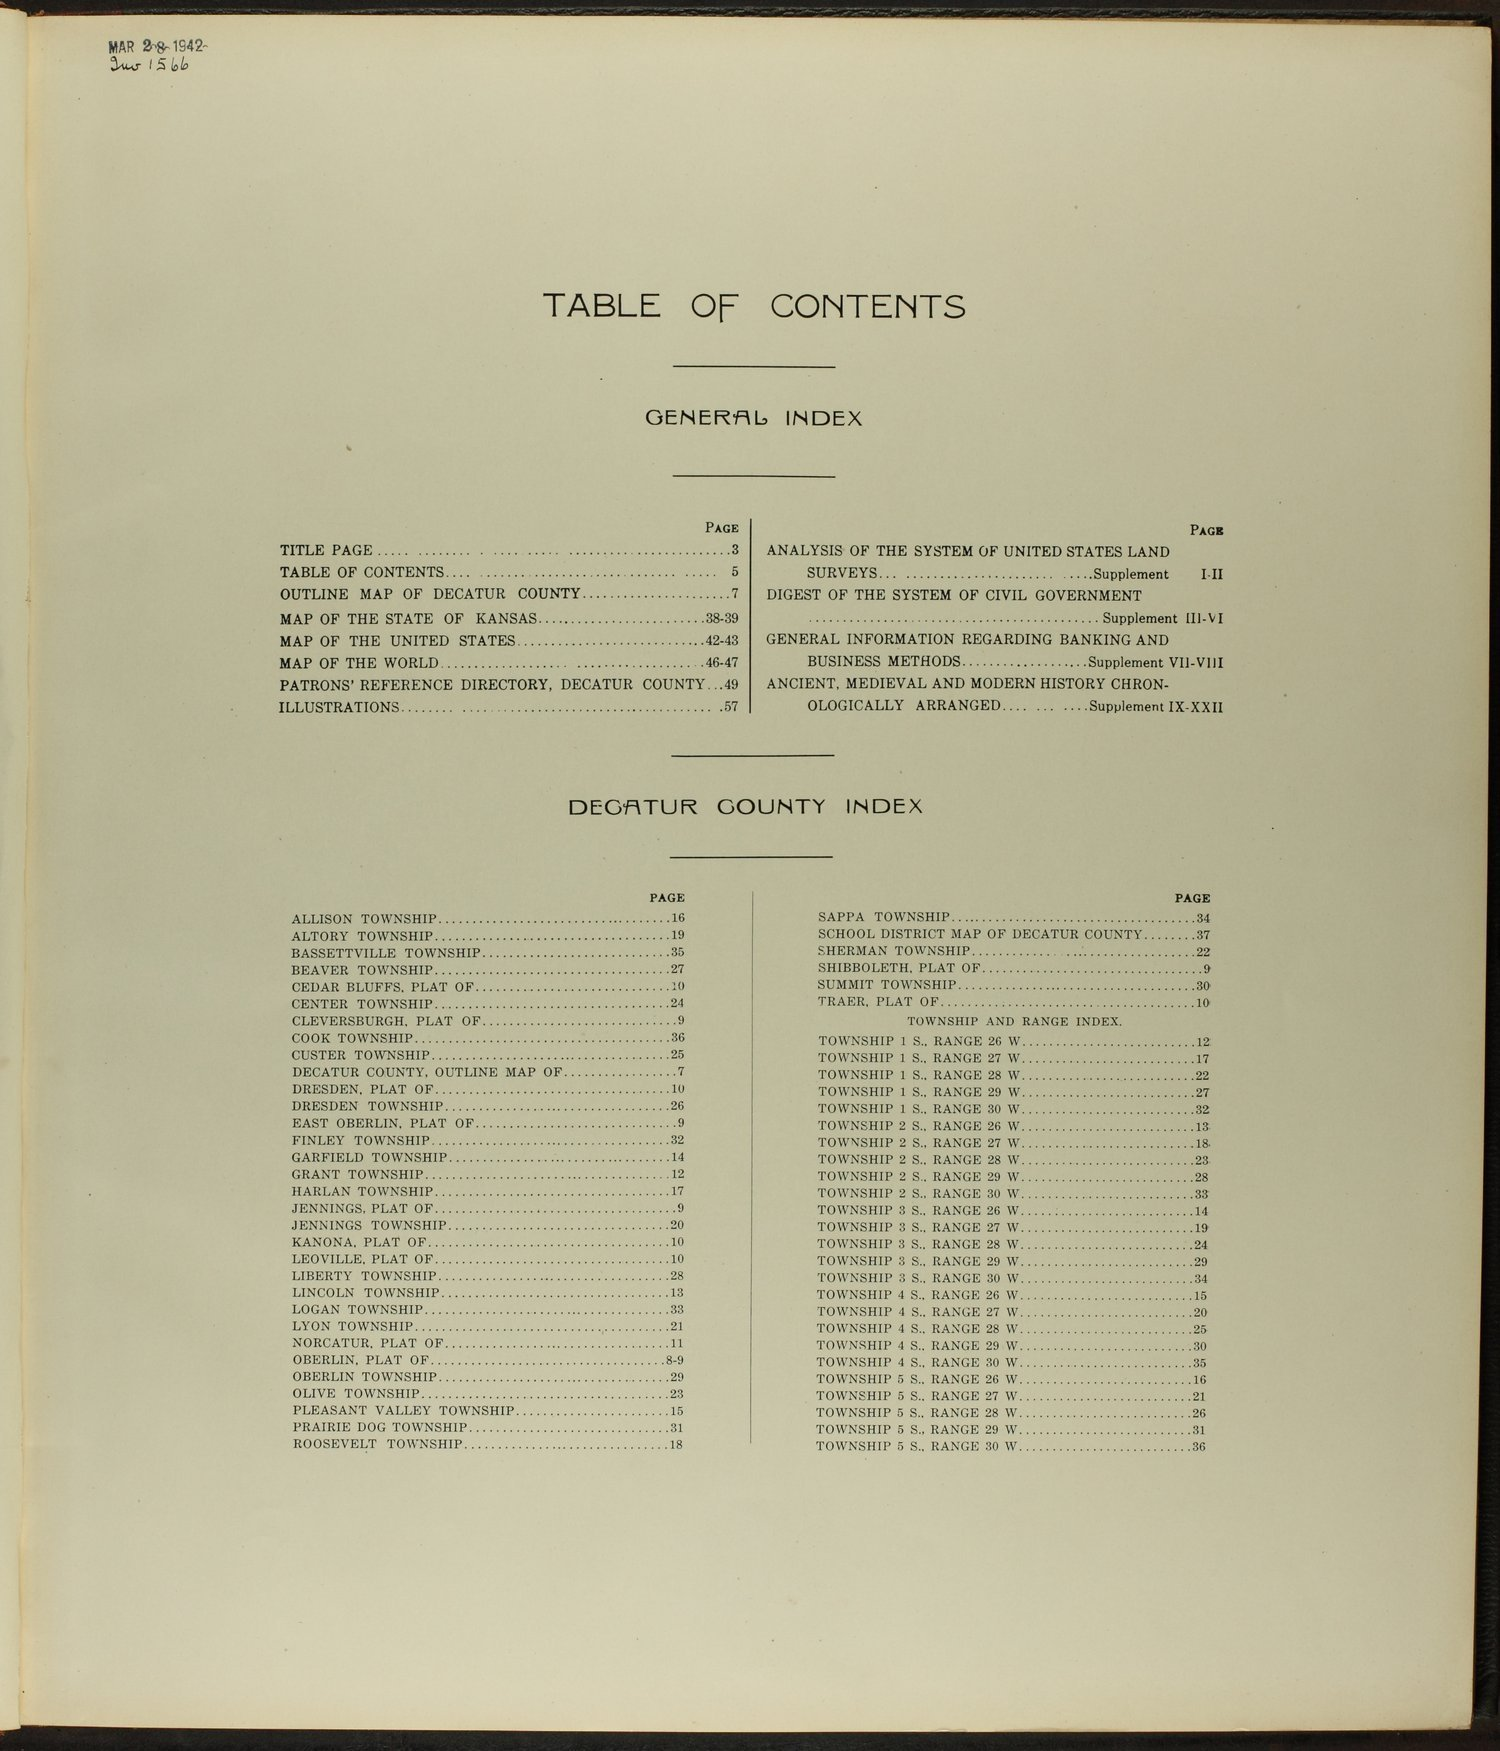 Standard atlas of Decatur County, Kansas - Table of contnets